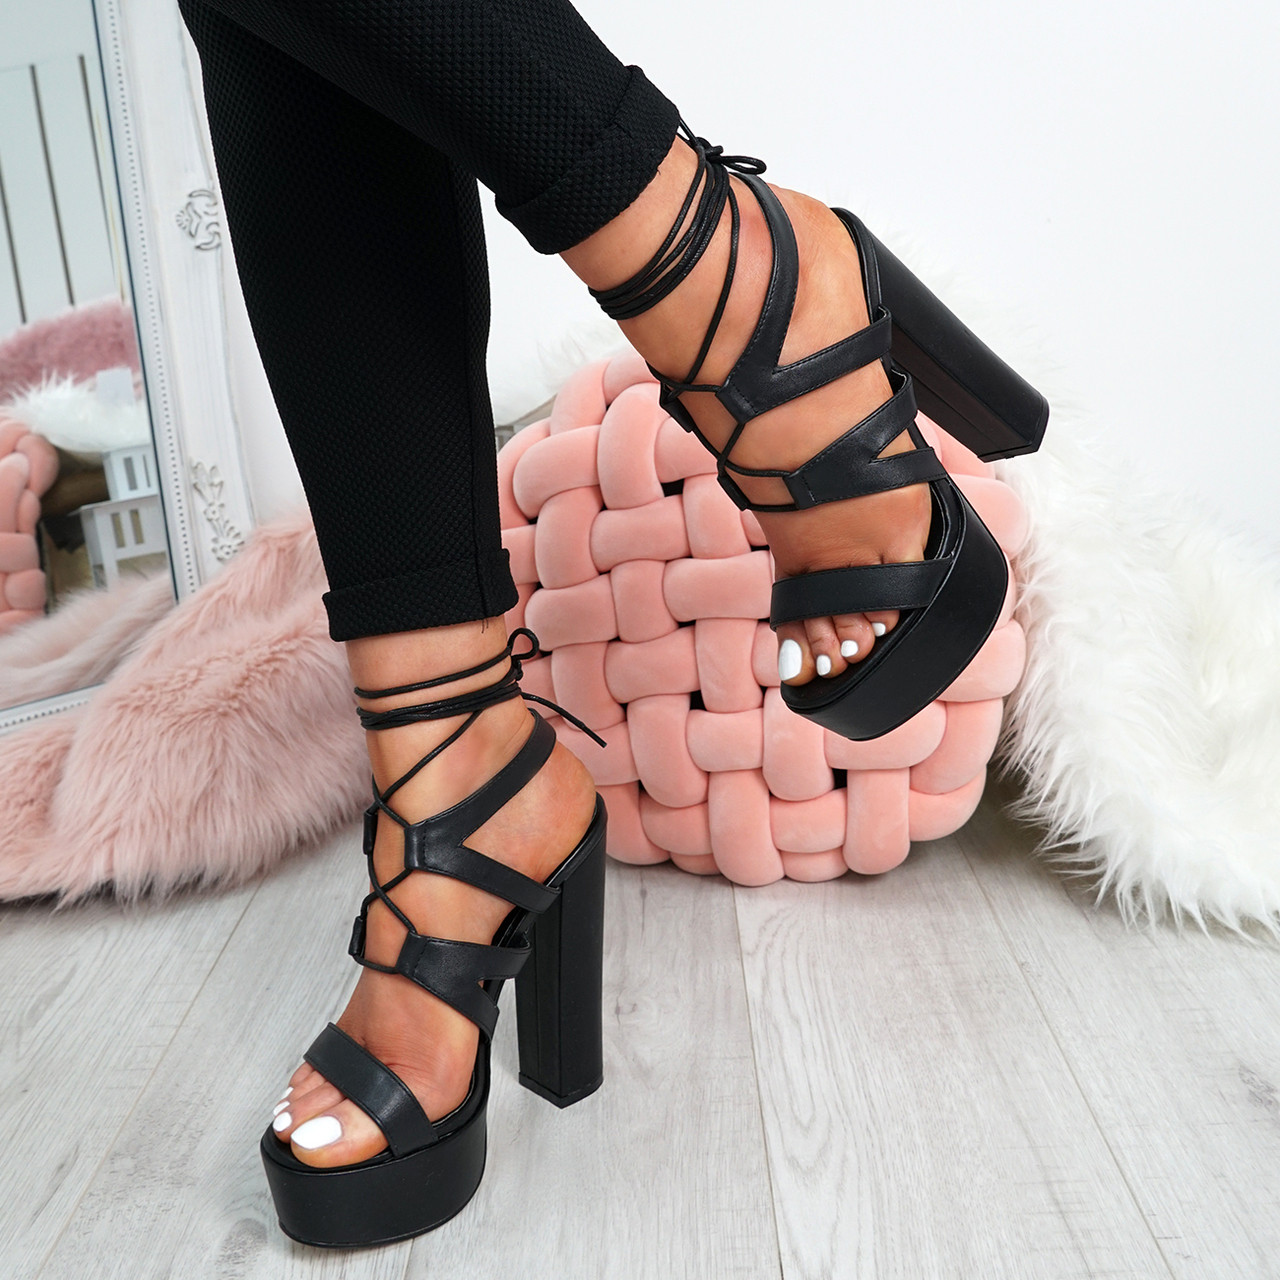 8d9379c927ab New Womens Cross Lace Sandal Platforms Ladies Girls Peep Toe High Block Heels  Shoes Size Uk 3-8